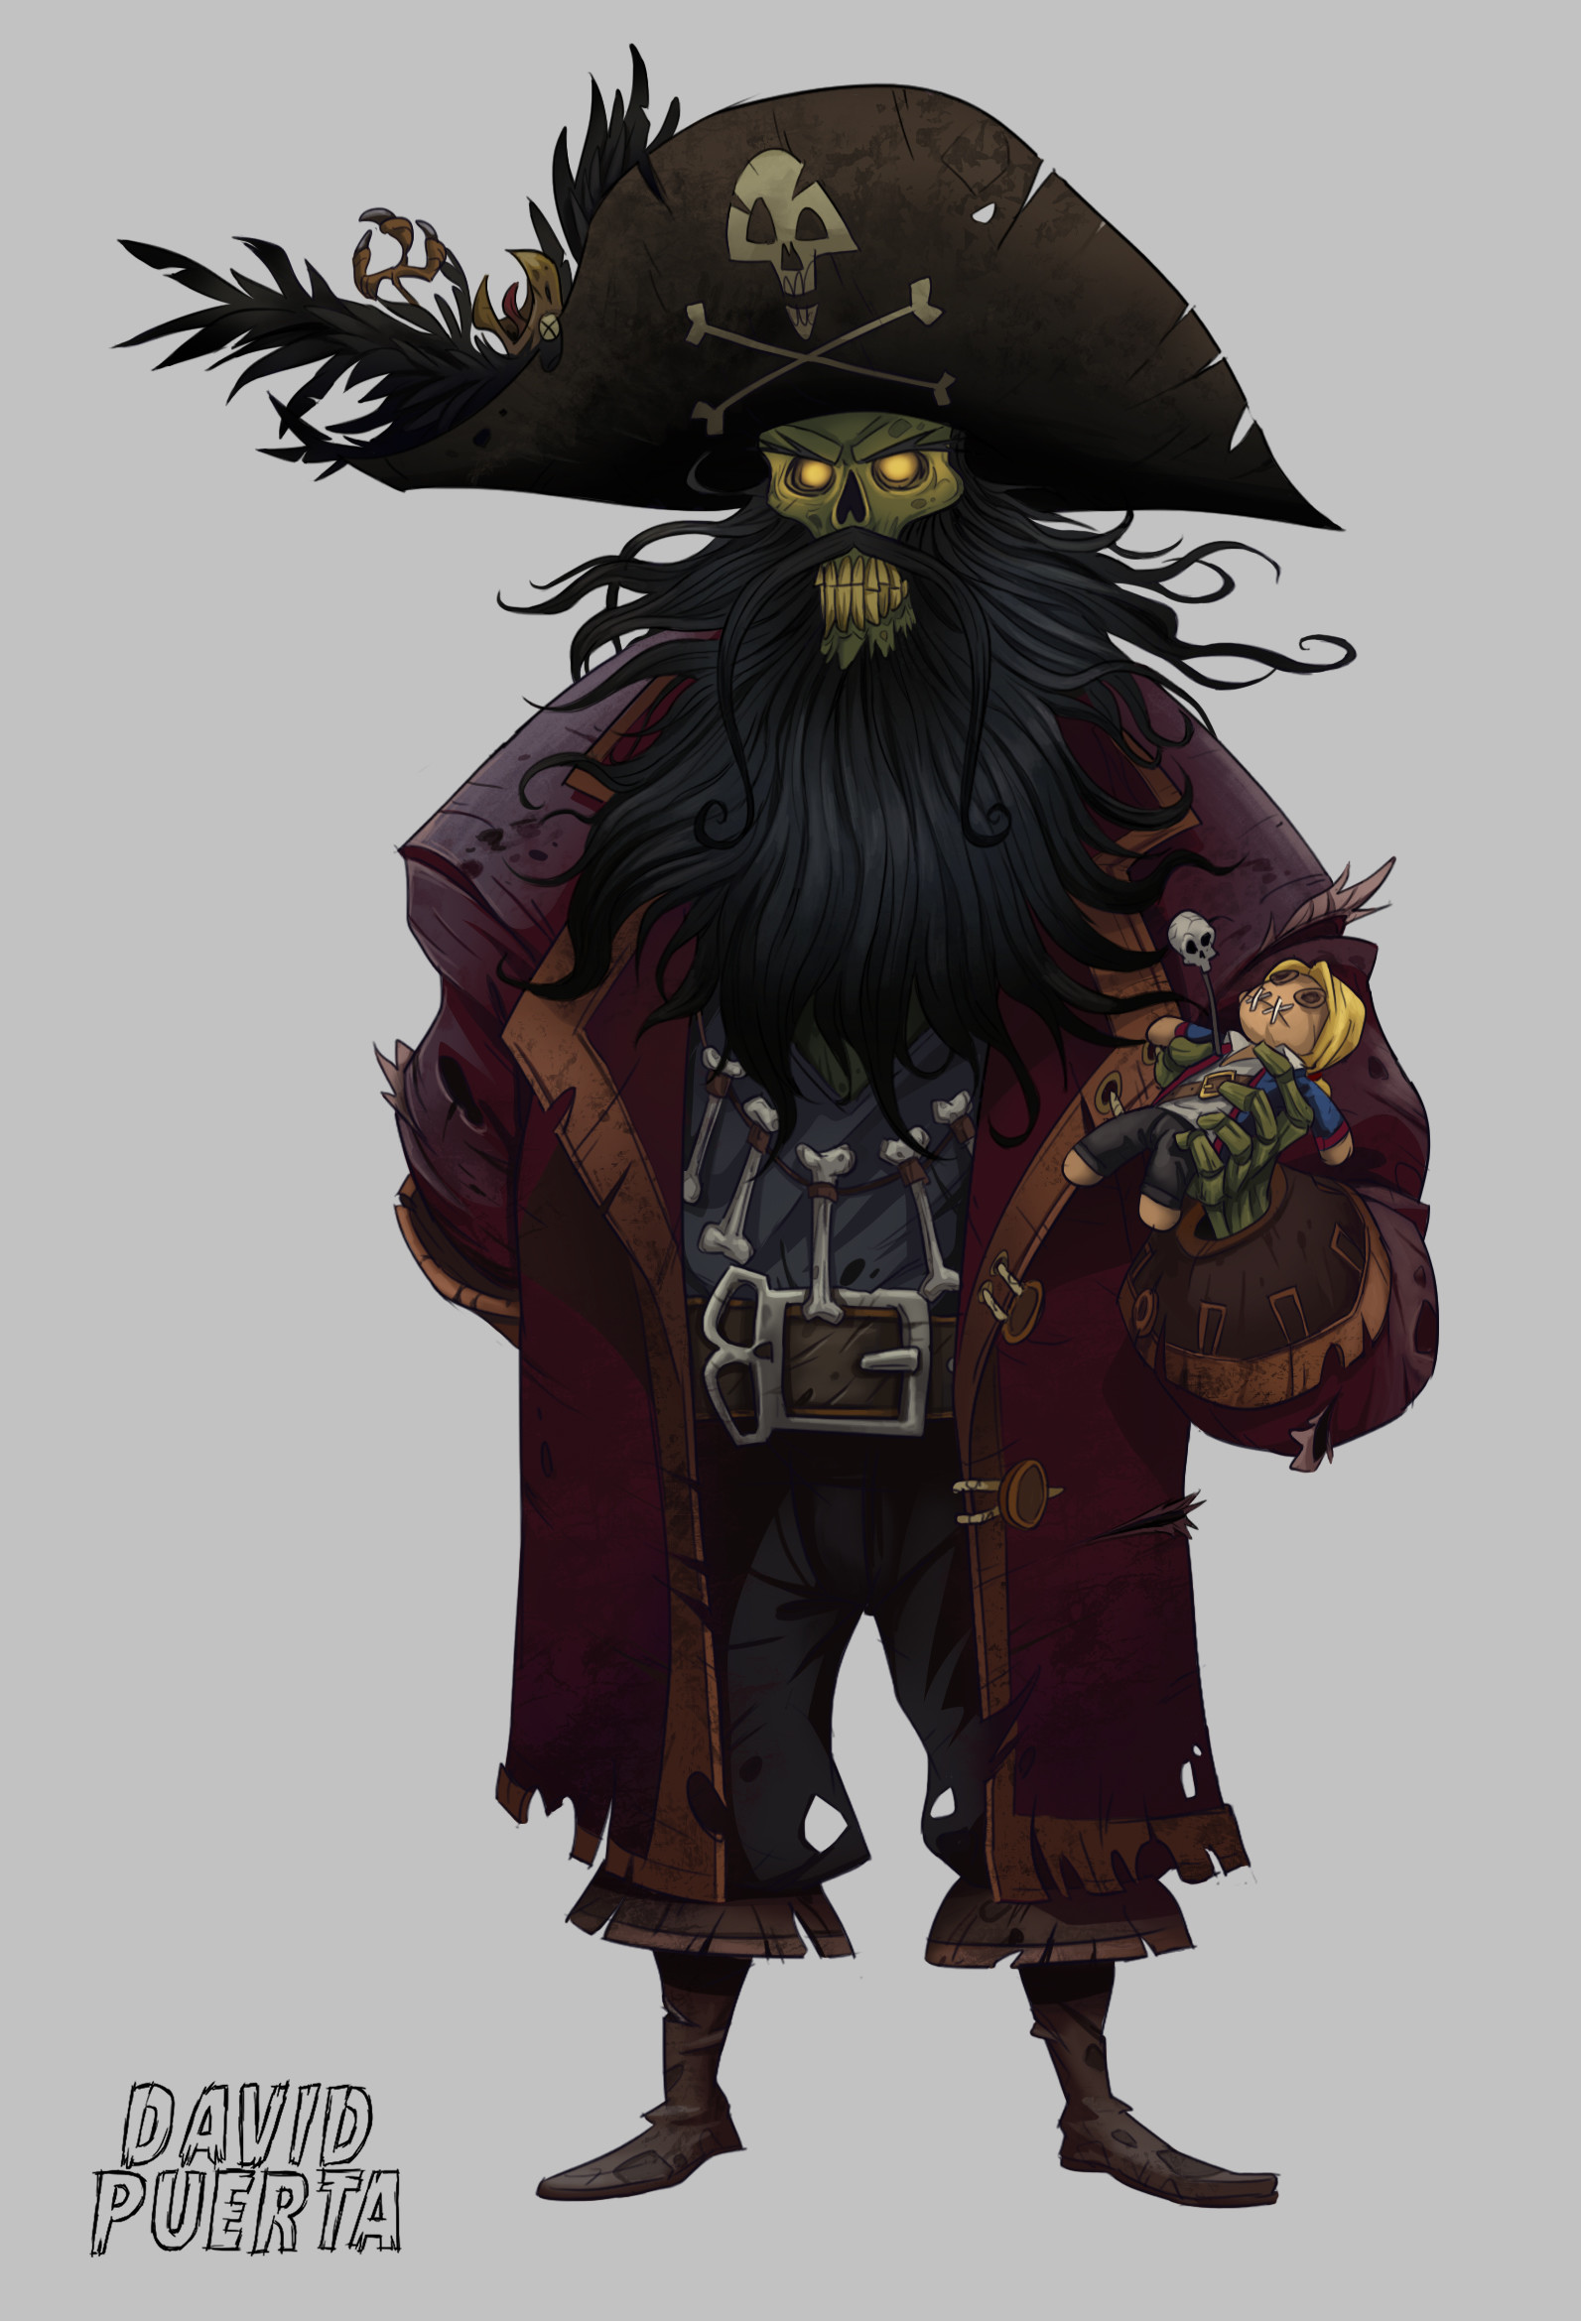 David puerta altes monkey island6 lechuck